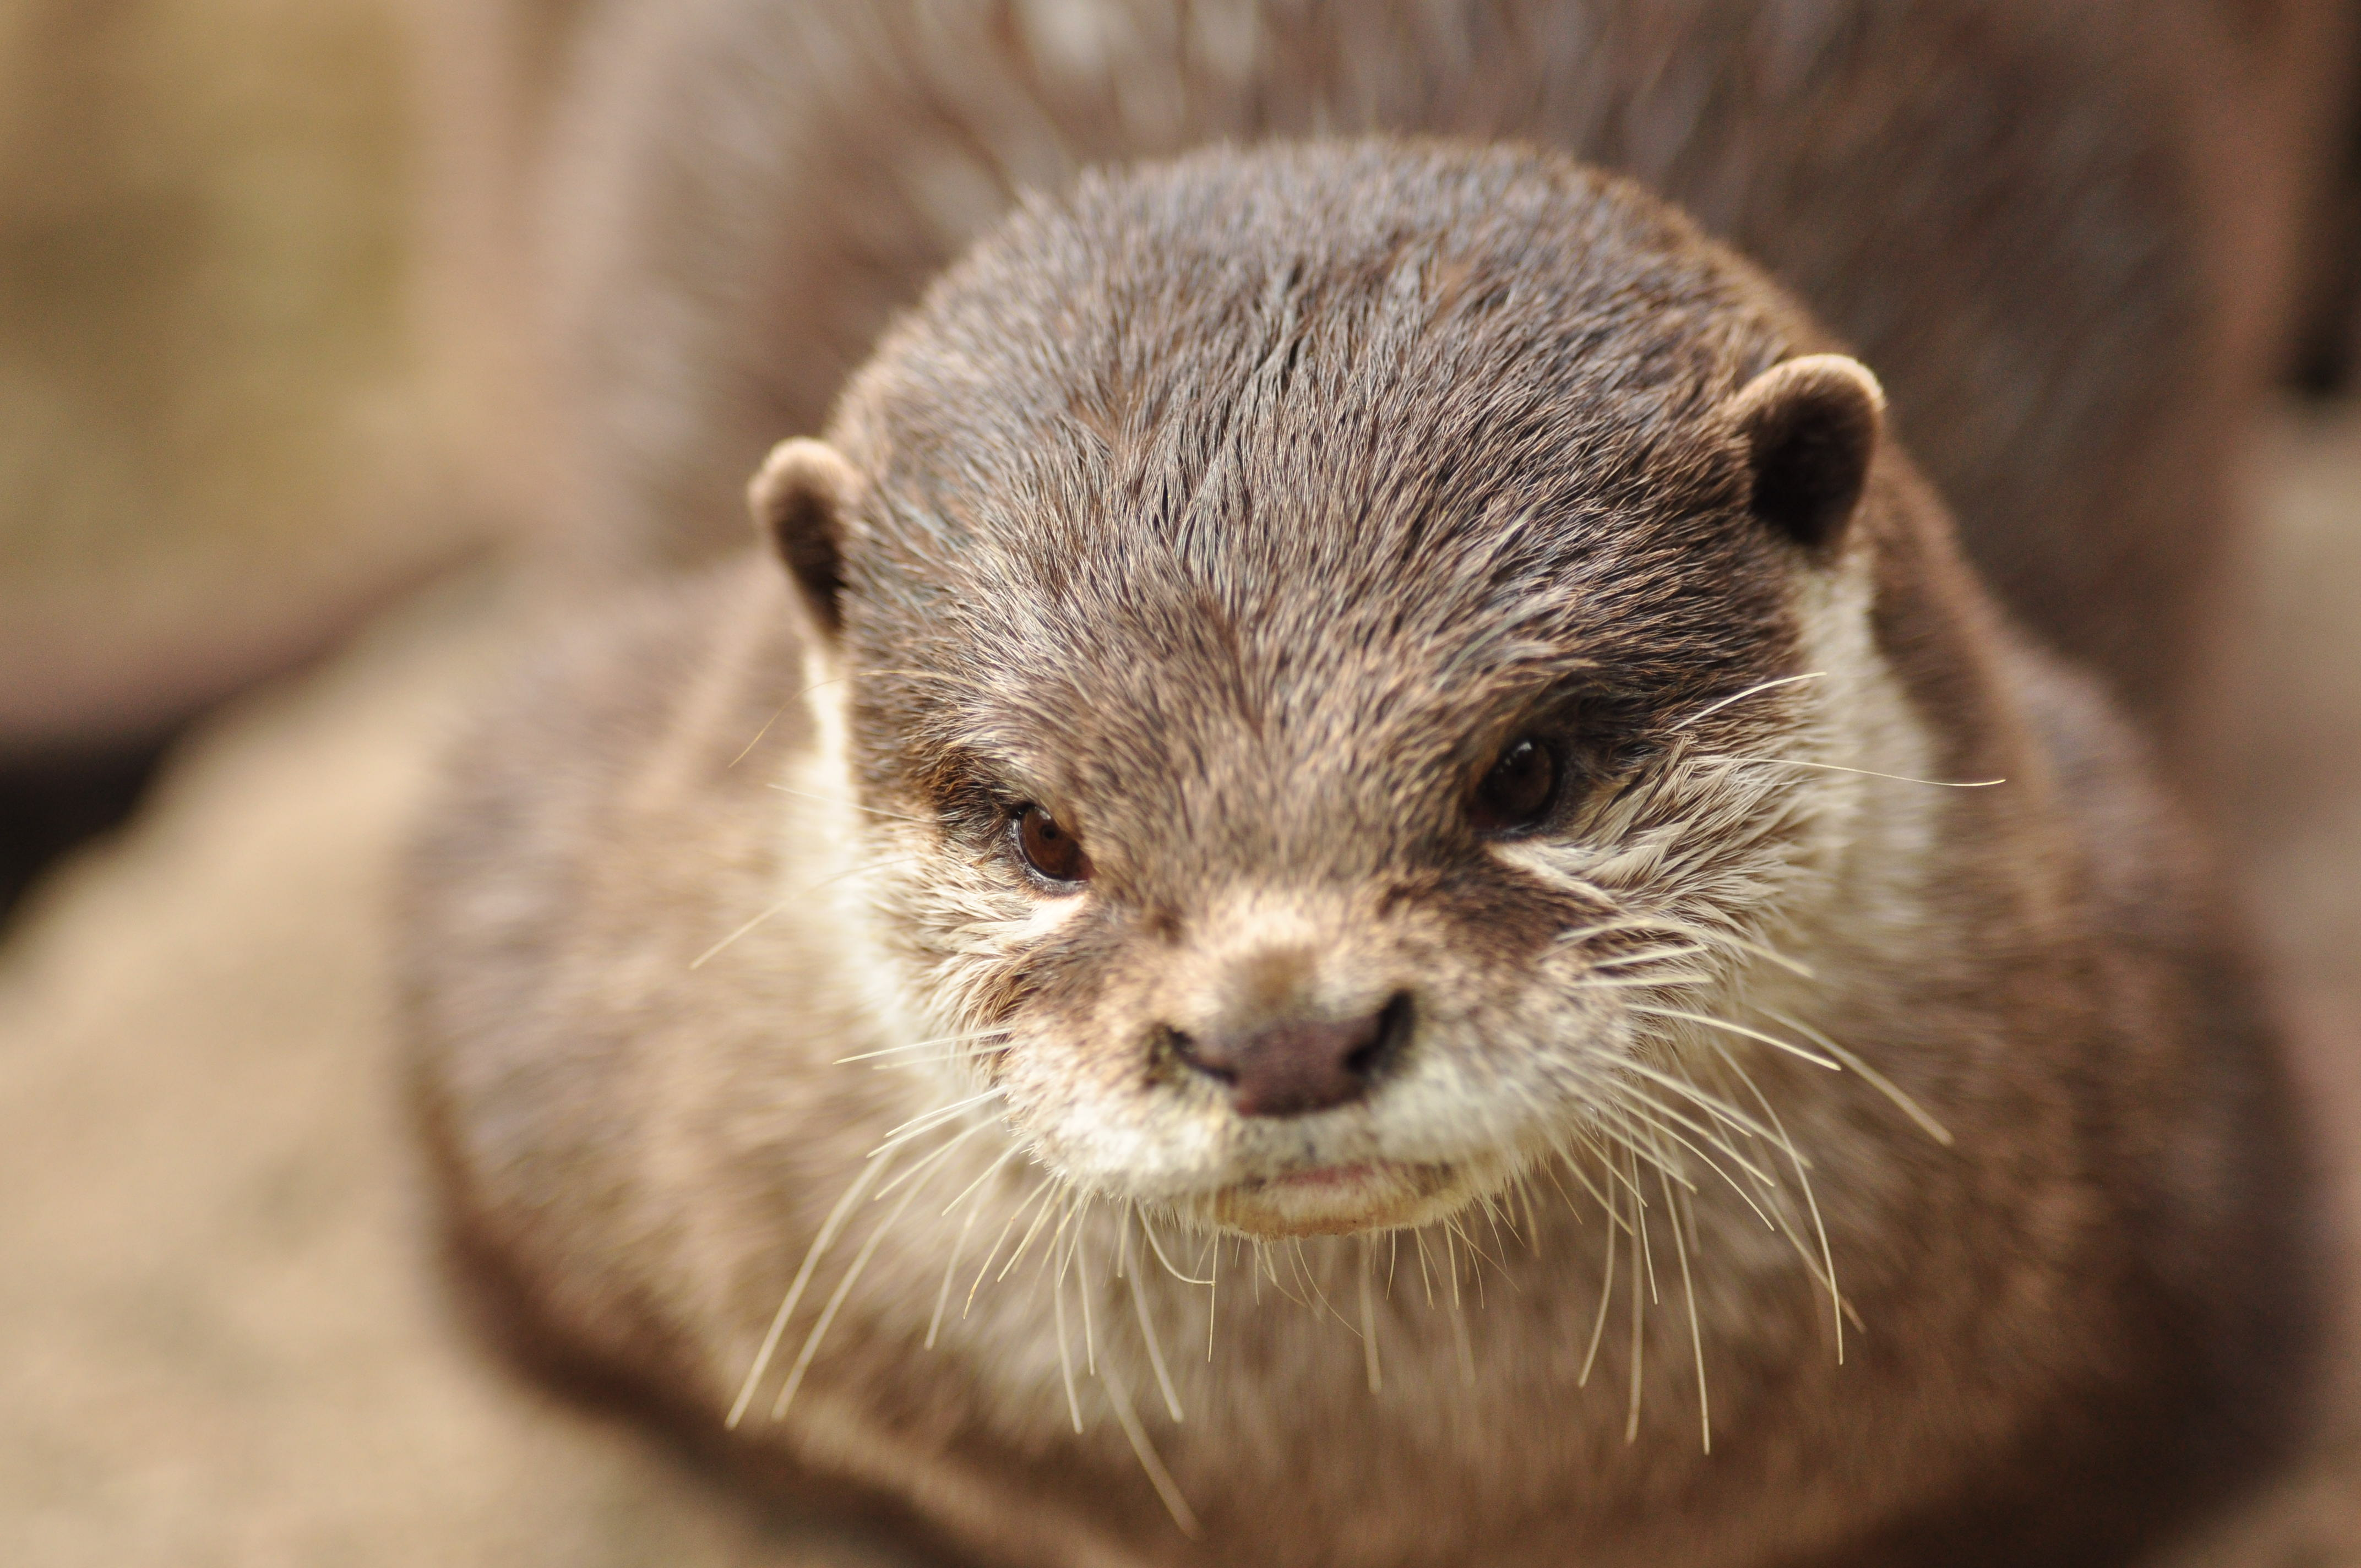 73621 download wallpaper Animals, Otter, Muzzle, Animal, Brown screensavers and pictures for free